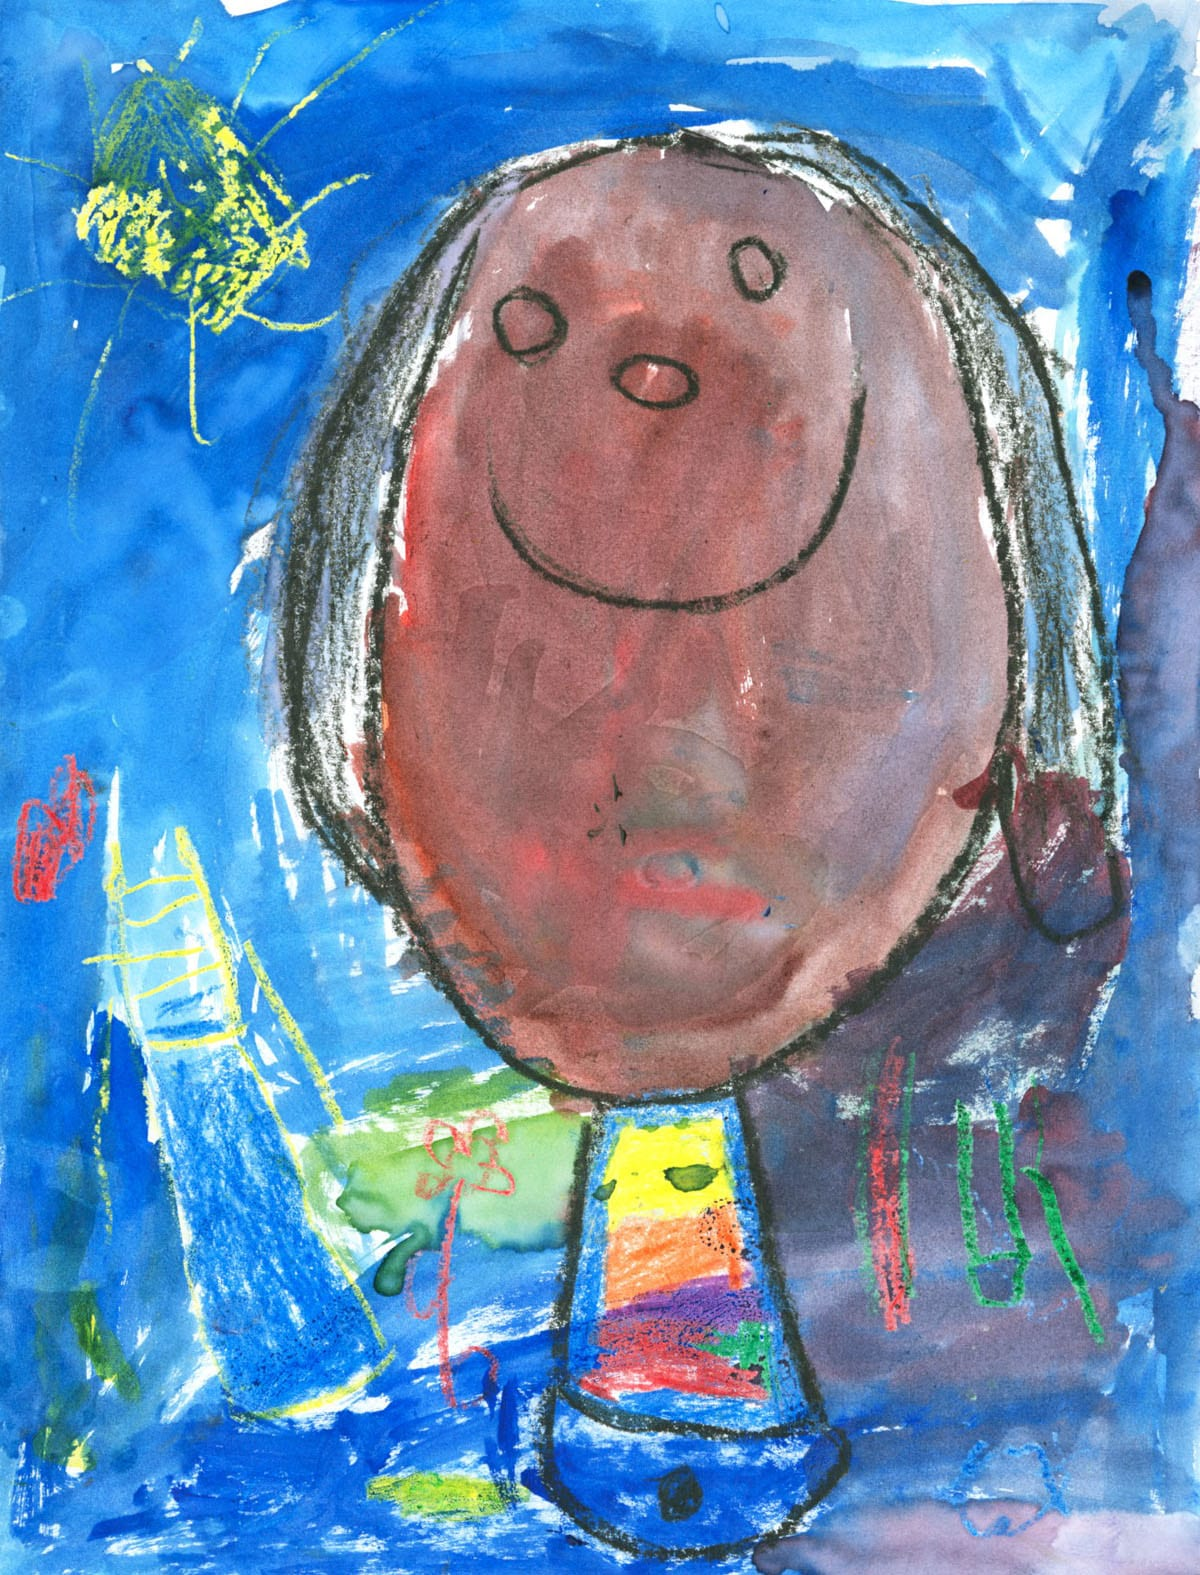 Self Portraits Artwork by Addison from Eagle Point Elementary